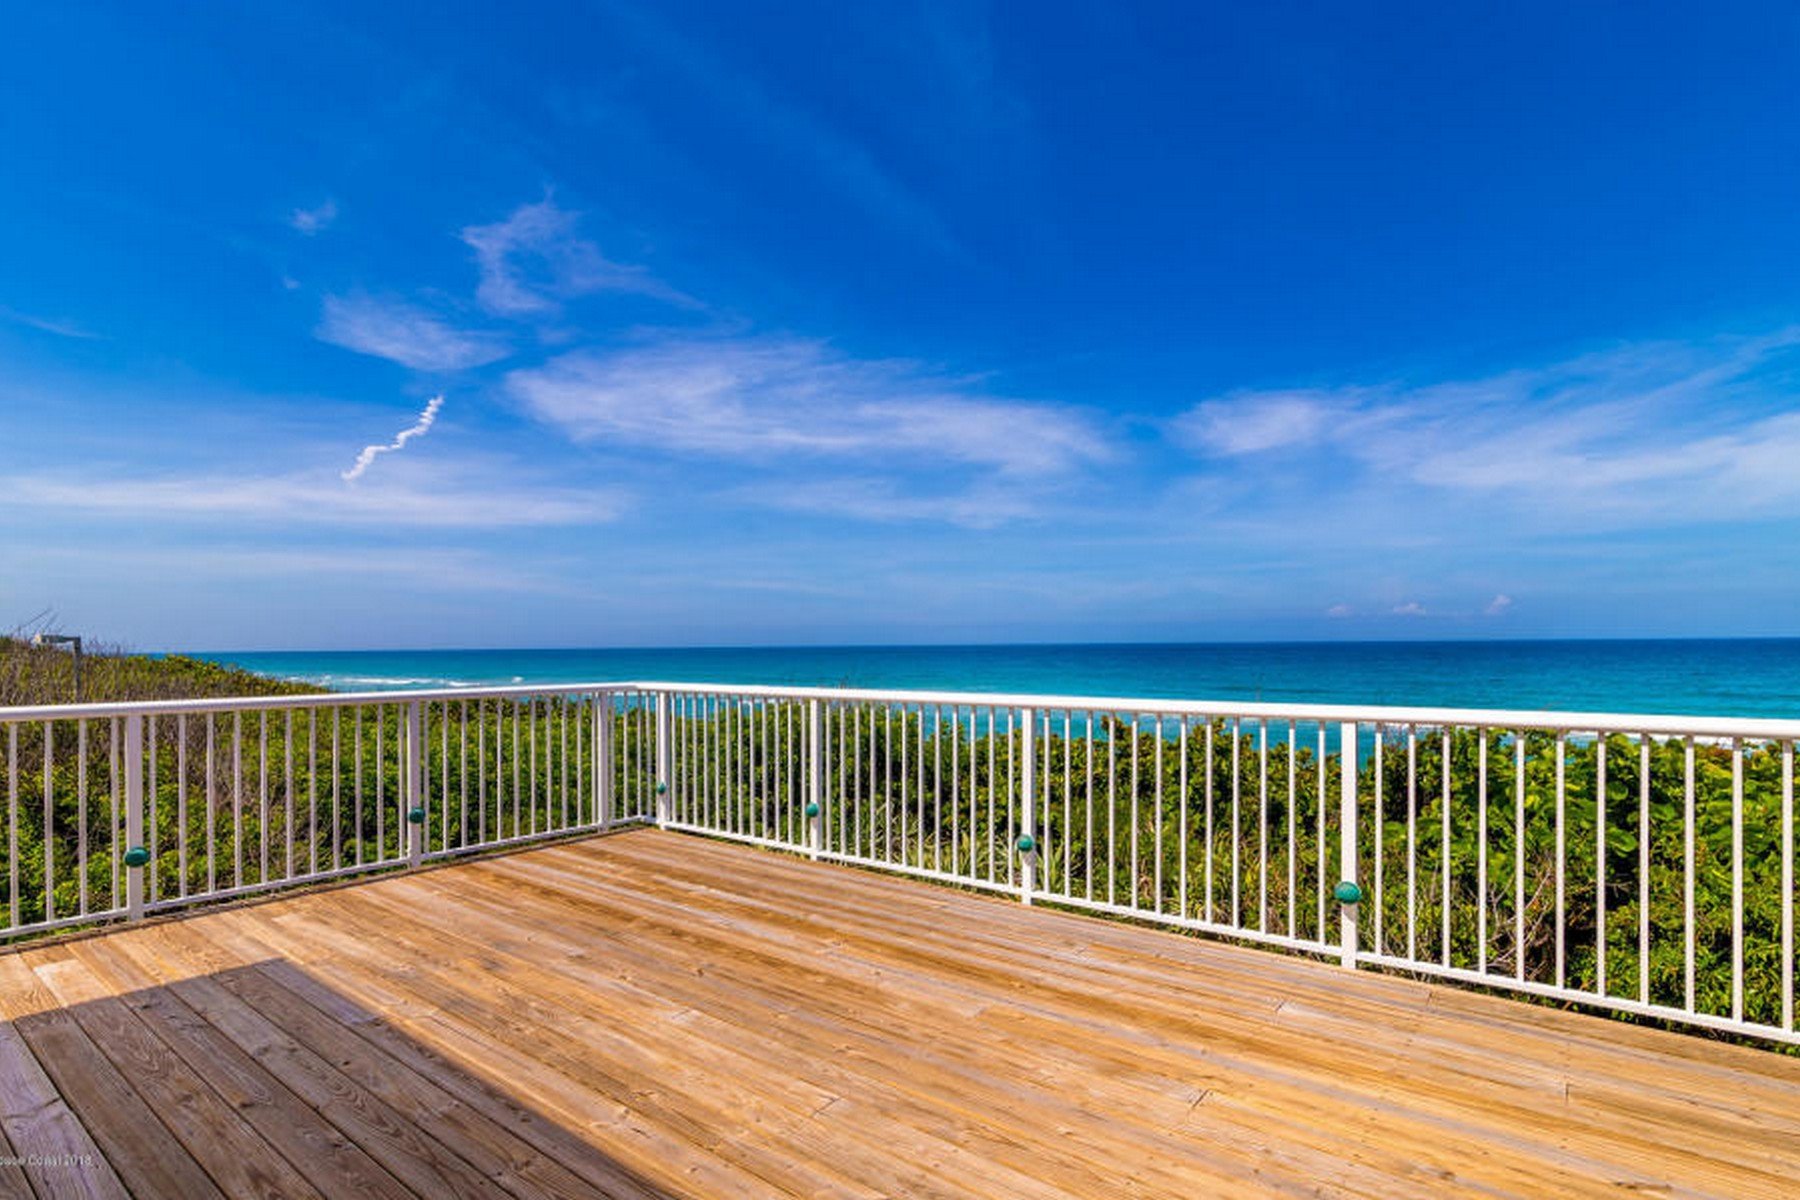 Additional photo for property listing at Bright & open villa in desirable Osprey Villas of Aquarina. 213 Osprey Villas Court Melbourne Beach, Florida 32951 United States